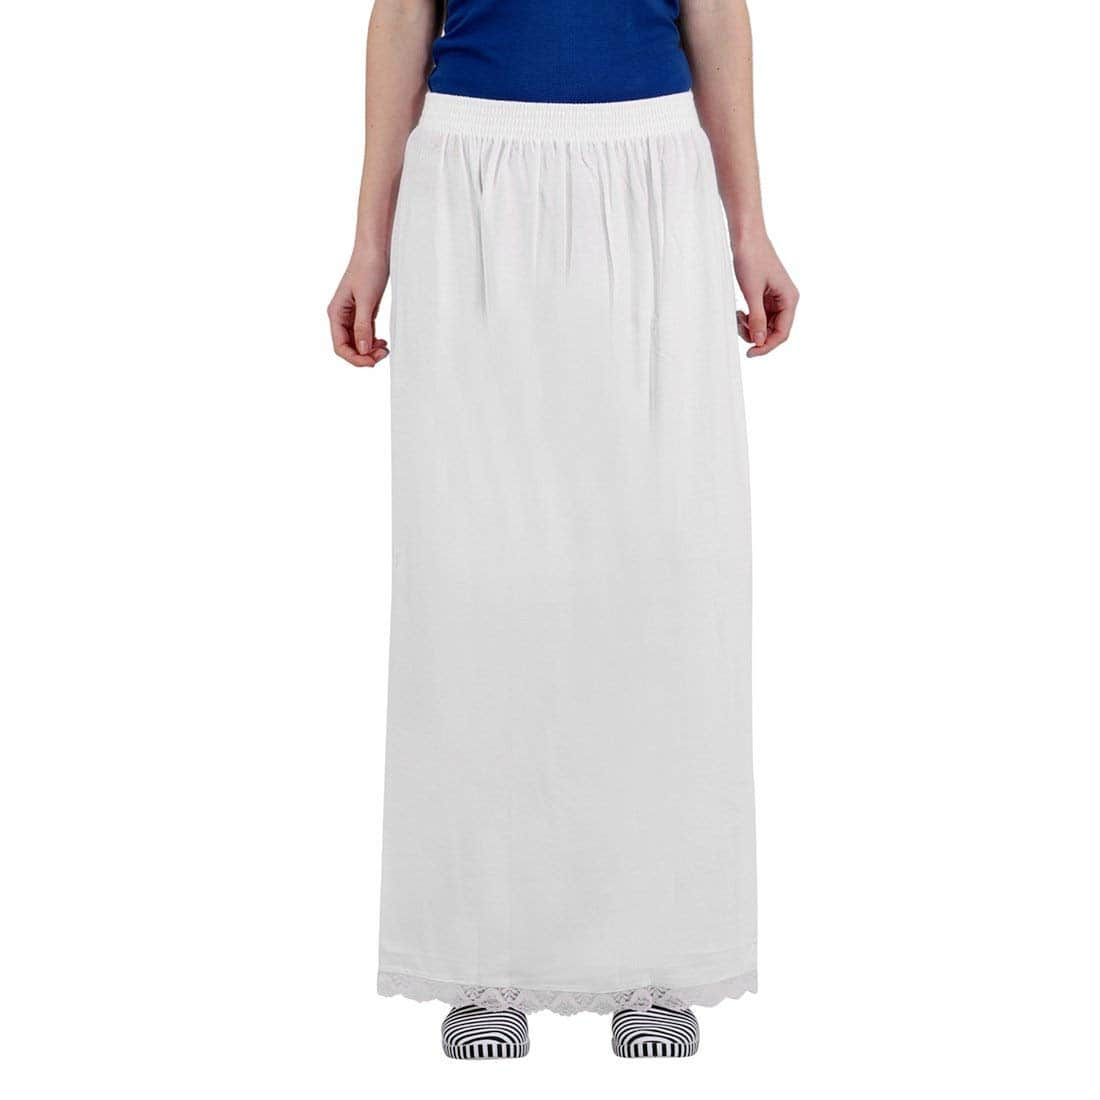 here are some products like dress, shorts, minidress, skirts of low price from the house Splash, For purchasing click on this link:-  https://www.amazon.in/s/ref=nb_sb_noss?url=node%3D1967985031&field-keywords=splash&rh=n%3A1571271031%2Cn%3A!1571272031%2Cn%3A1967936031%2Cn%3A15966954031%2Cn%3A1967985031%2Ck%3Asplash  #skirts #longskirts #shorts #bermunda #petticoat